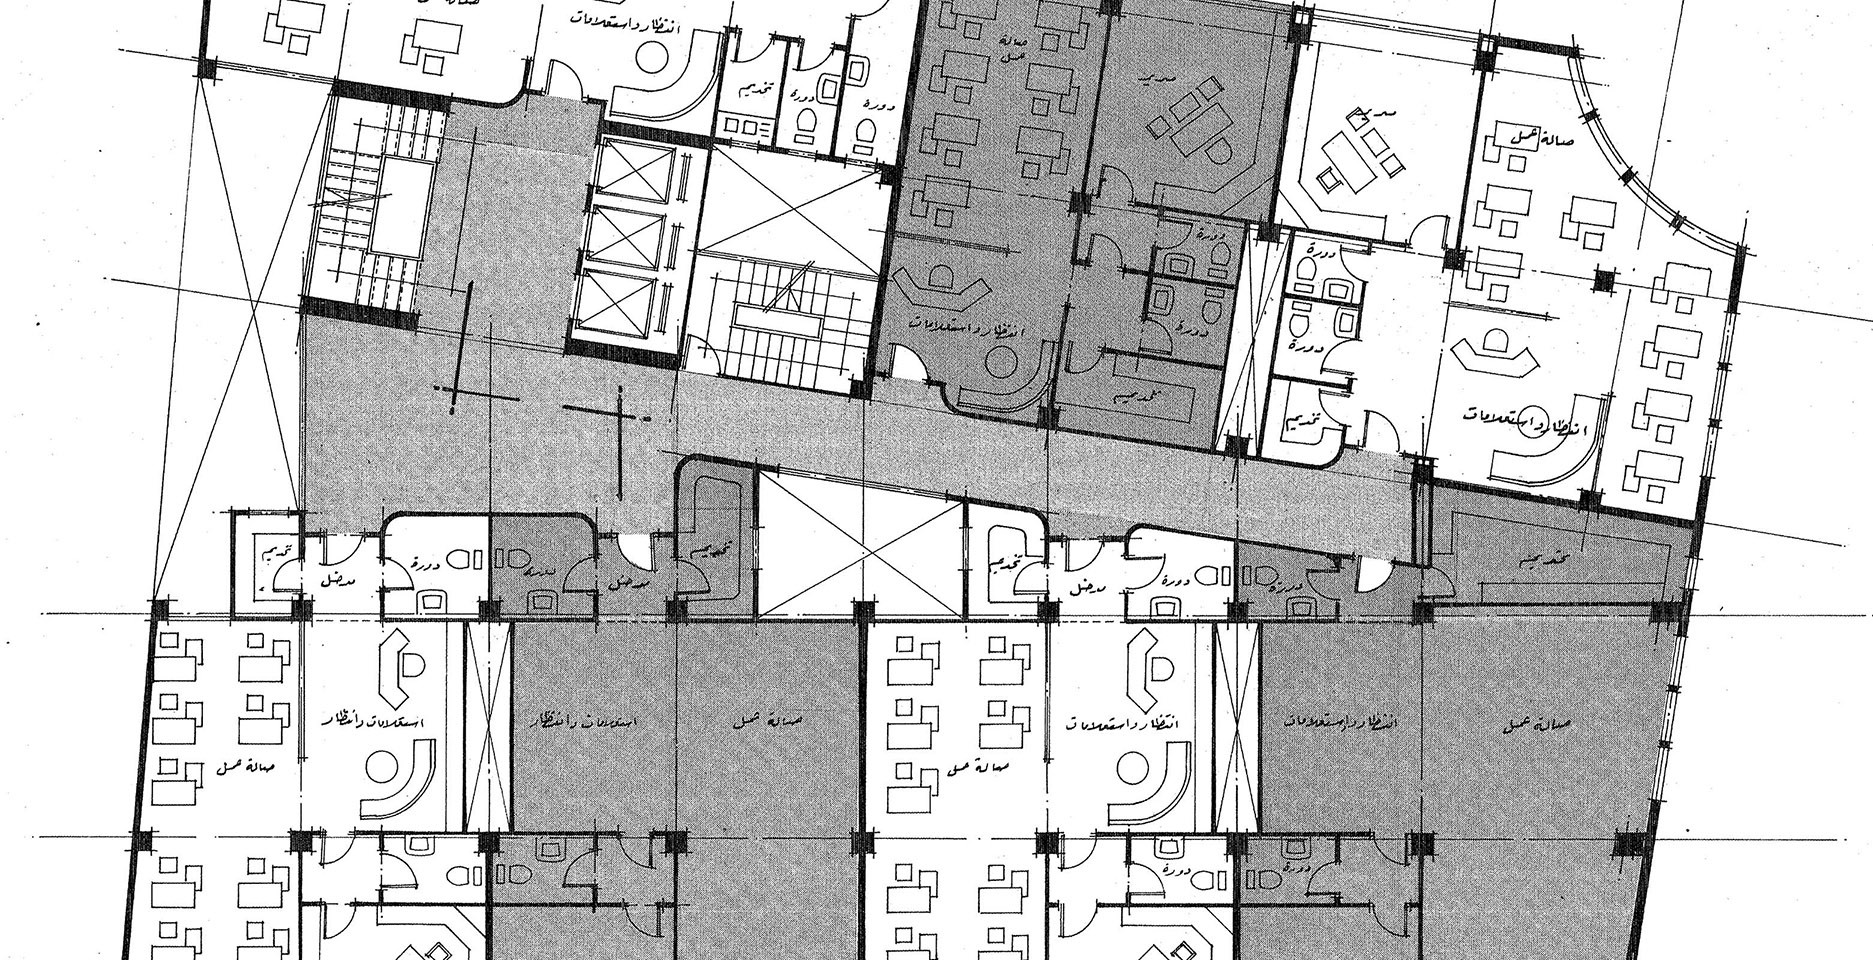 Misr Insurance Shubra Mixed Use Building Typical Office Plan